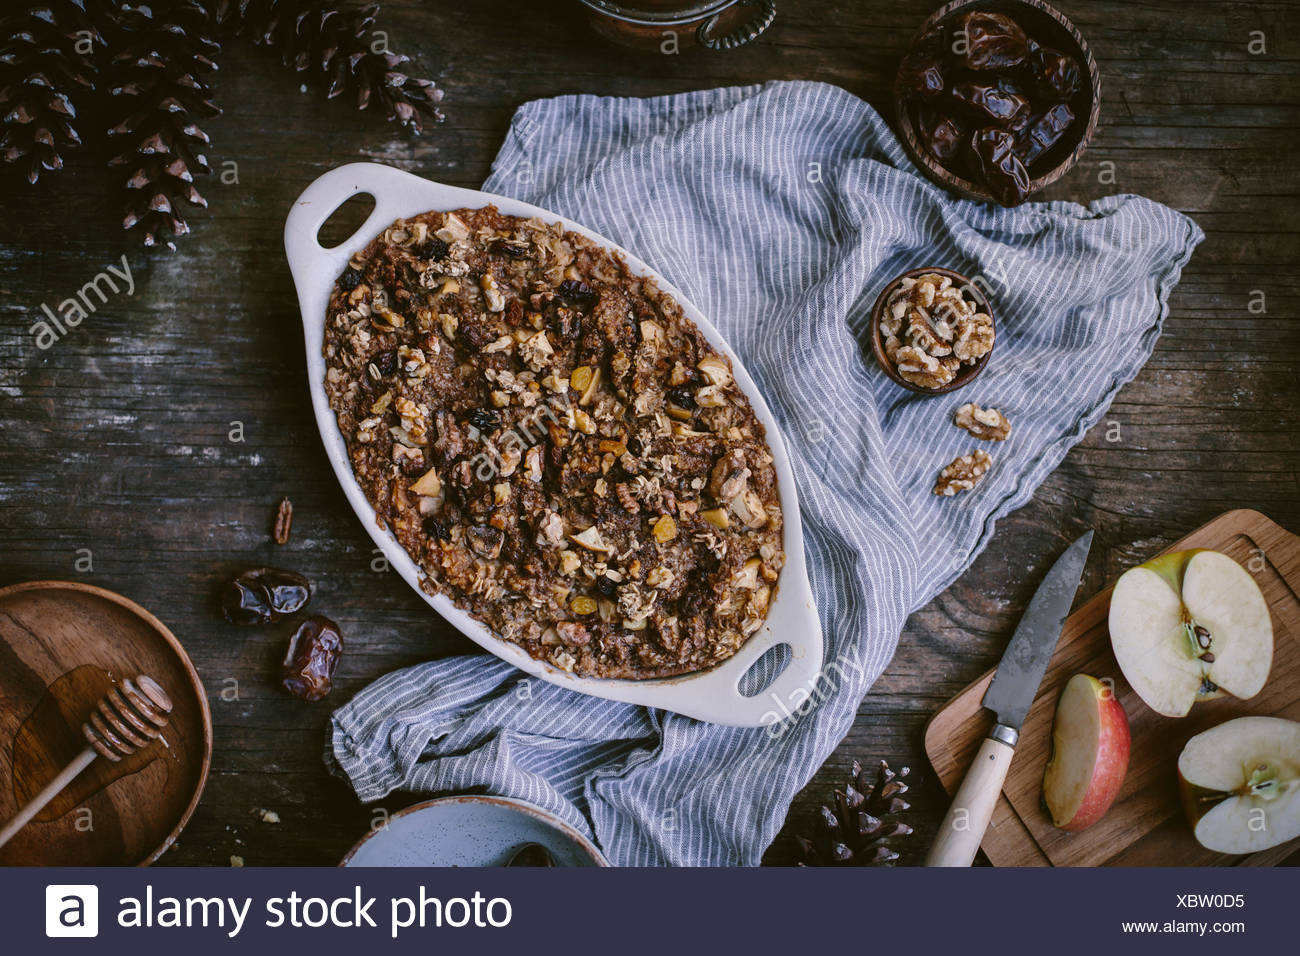 Baked oatmeal with apples, dates, bananas, and walnut is just out of the oven, about to be served and displayed on a reclaimed w - Stock Image